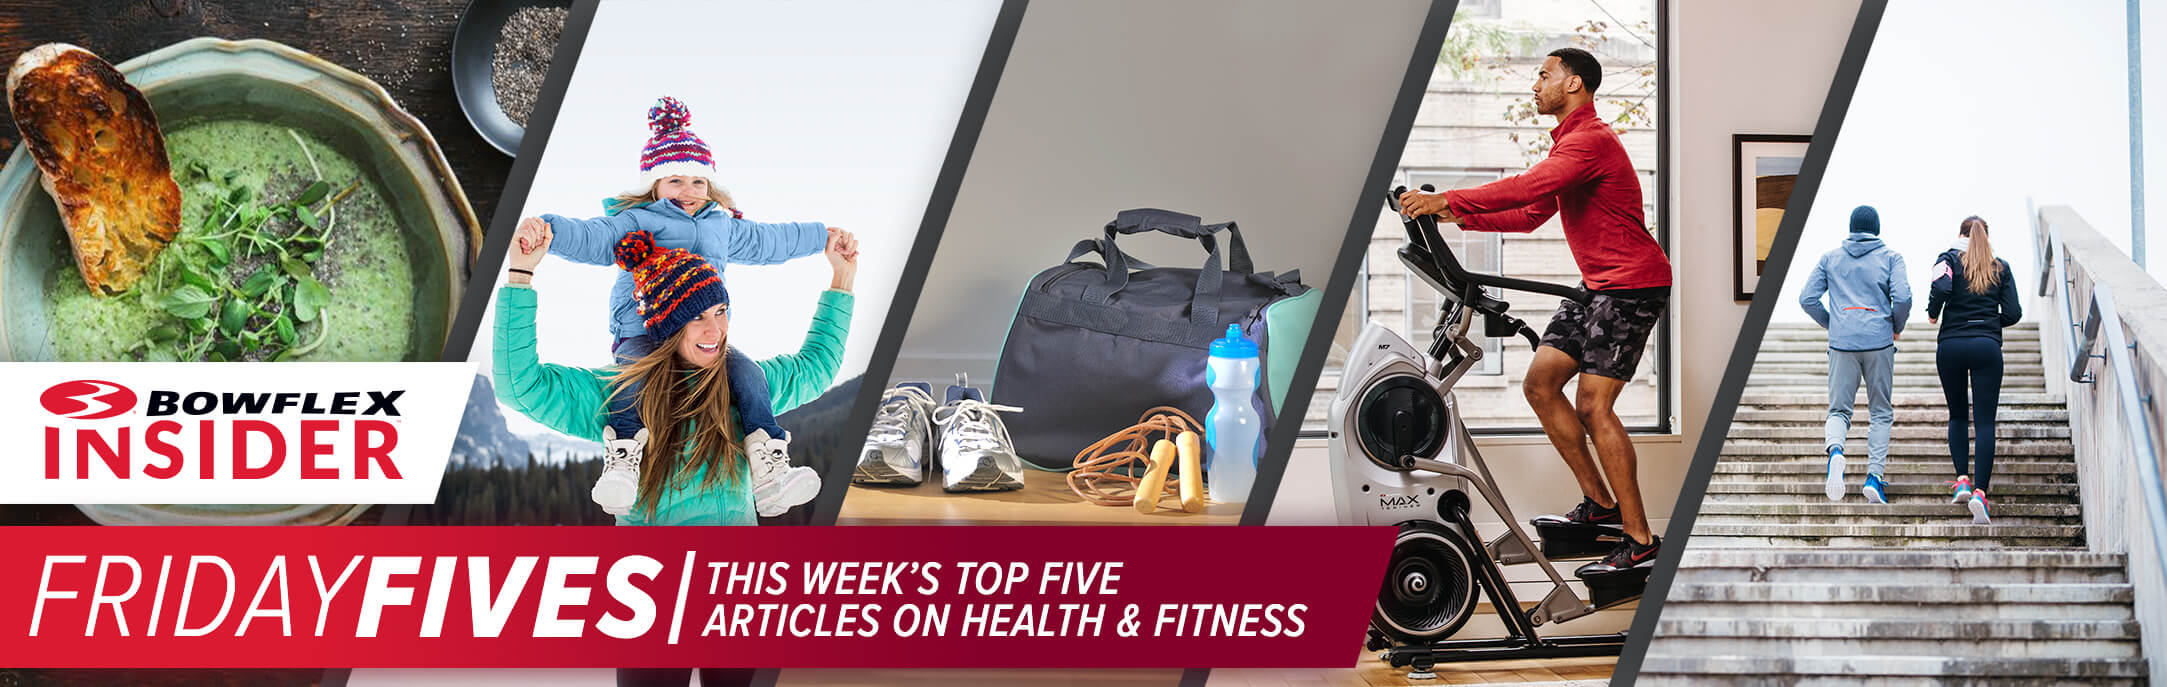 Friday Fives - Bowflex Insider - This week's top five articles on health & fitness.